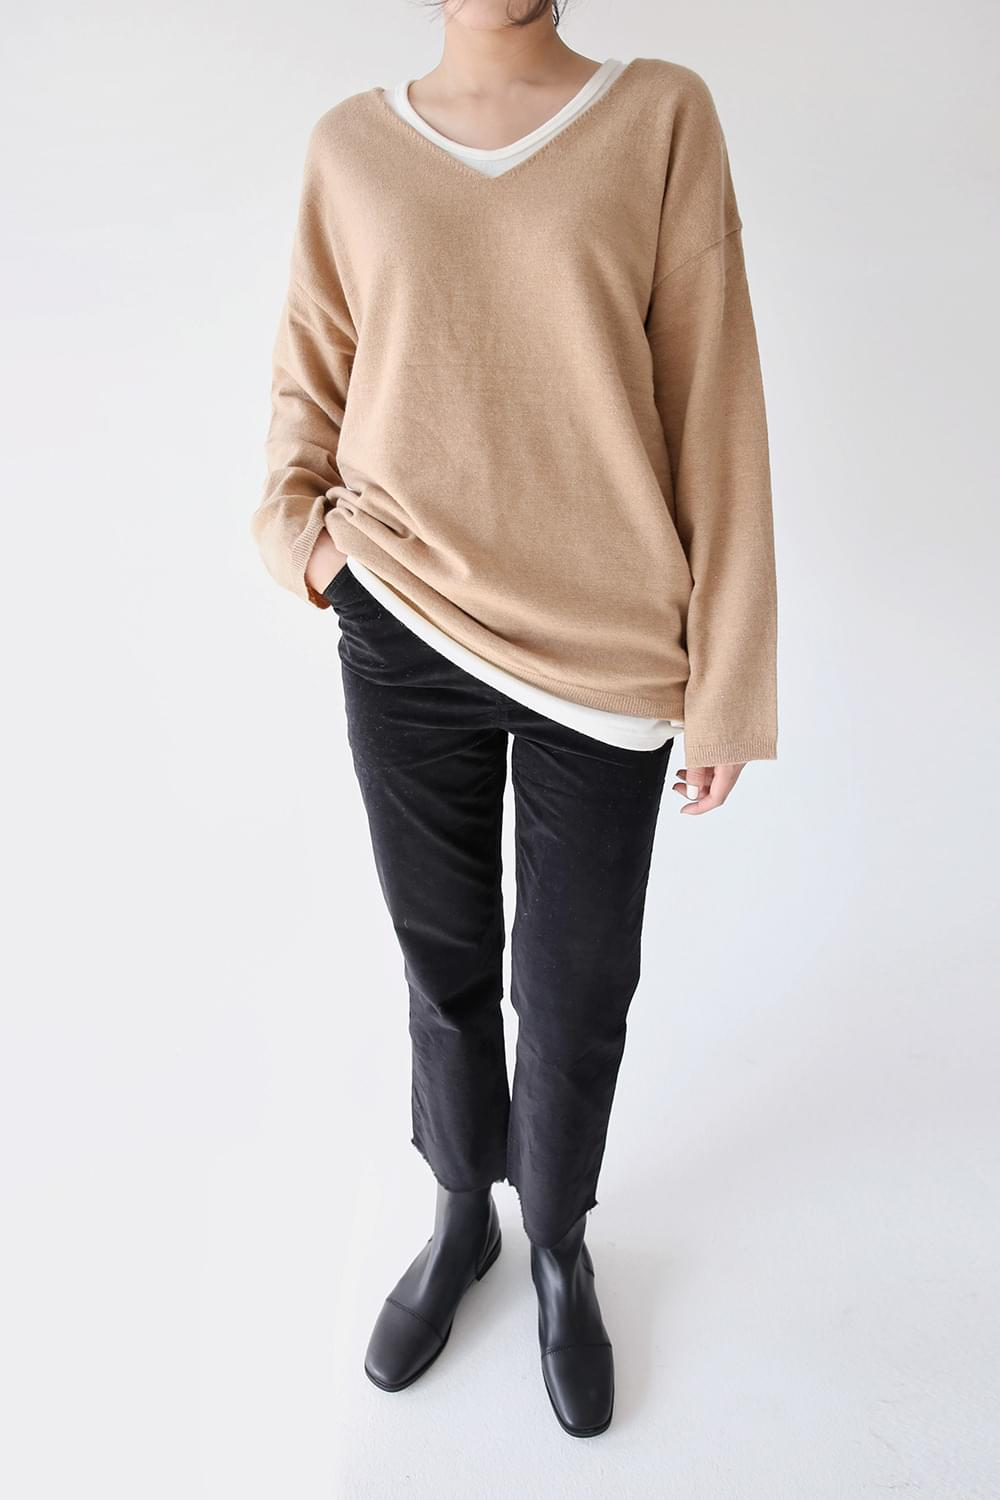 v neck cashmere top (4colors)